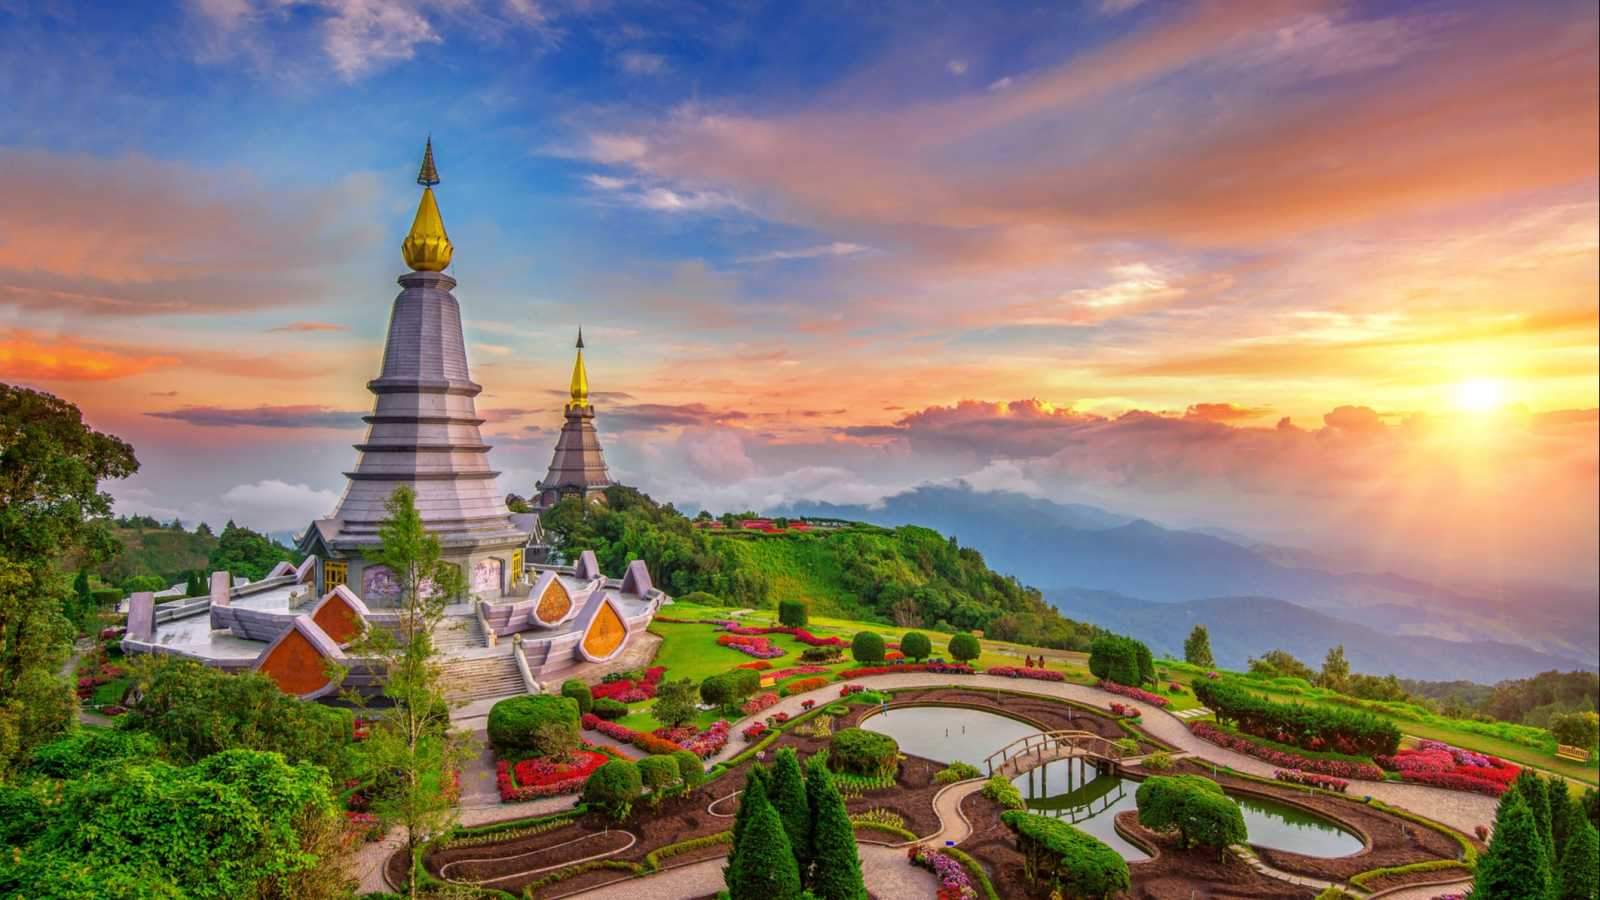 Der_Inthanon_Mountain_in_Chiang_Mai_Thailand